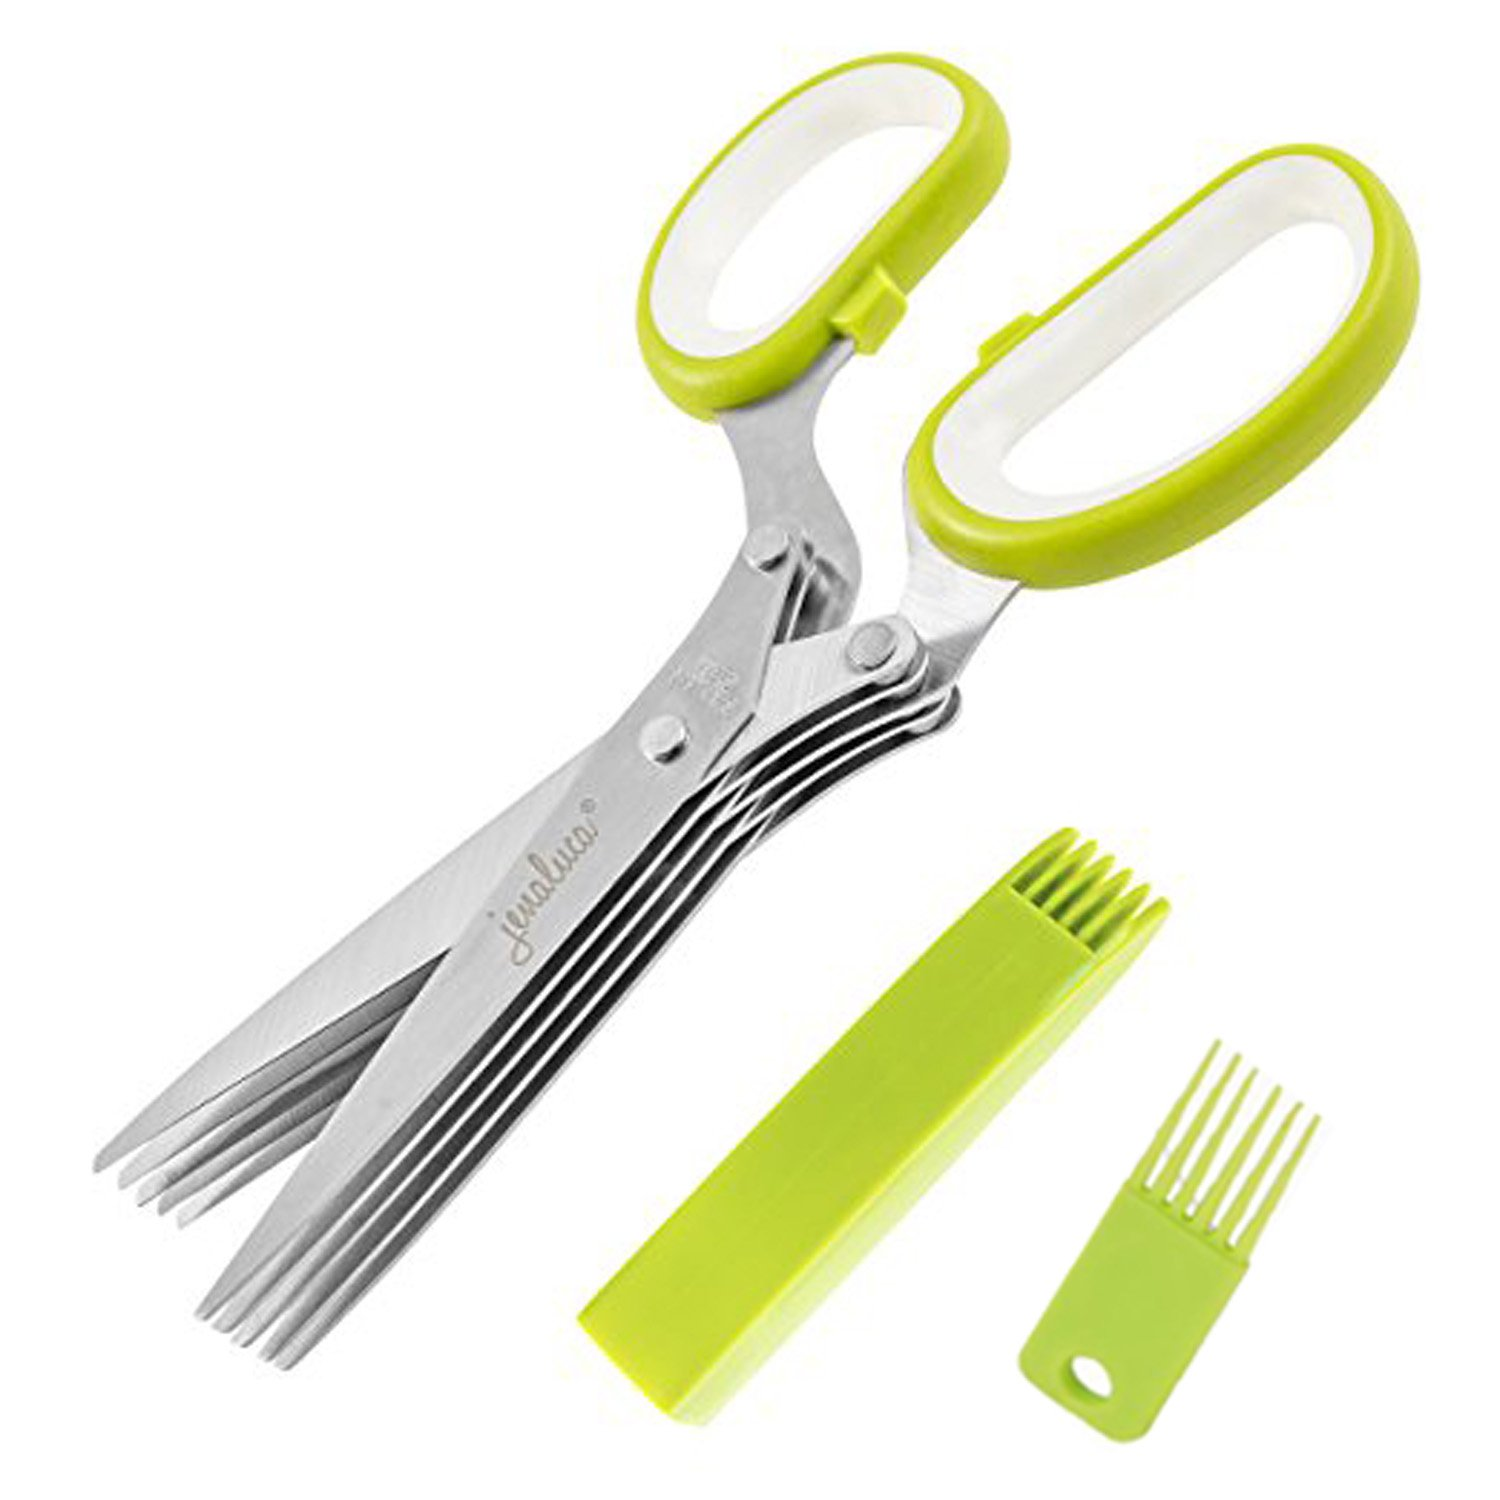 ZHYF Versatile Herb Scissors - Multi-Function Scissors with 5 Stainless Steel Blades, Safety Cover with Cover and Cleaning Comb, Used in Herbal or Office Paper, Kitchen Processing, etc.